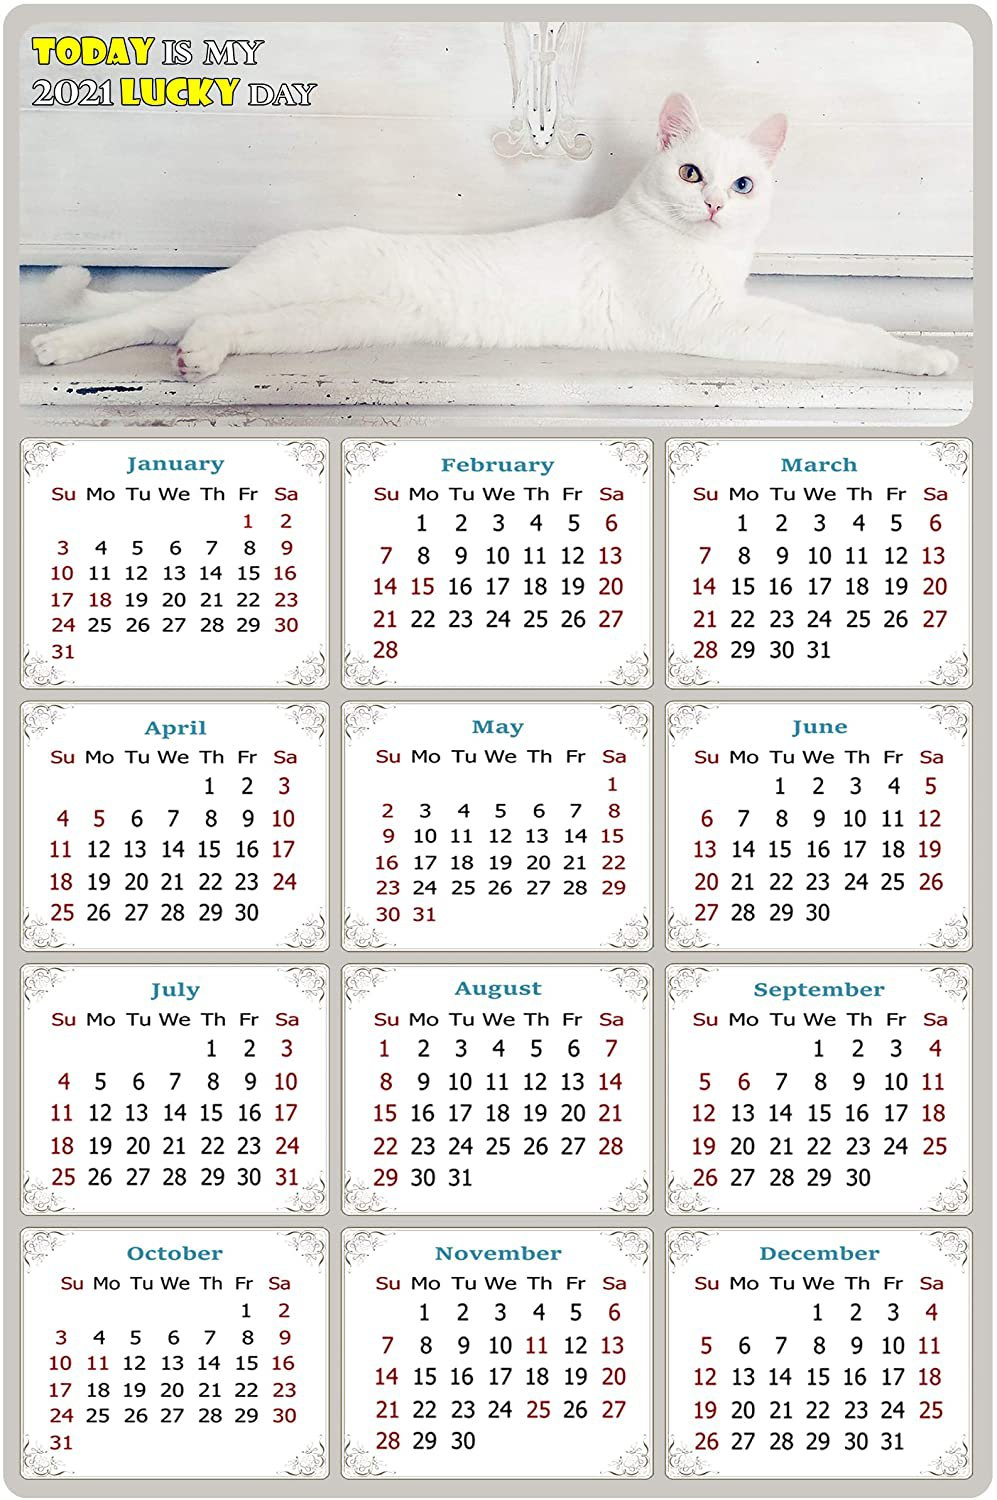 2021 Magnetic Calendar - Calendar Magnets - Today is My Lucky Day - Cat Themed 06 (7 x 10.5)